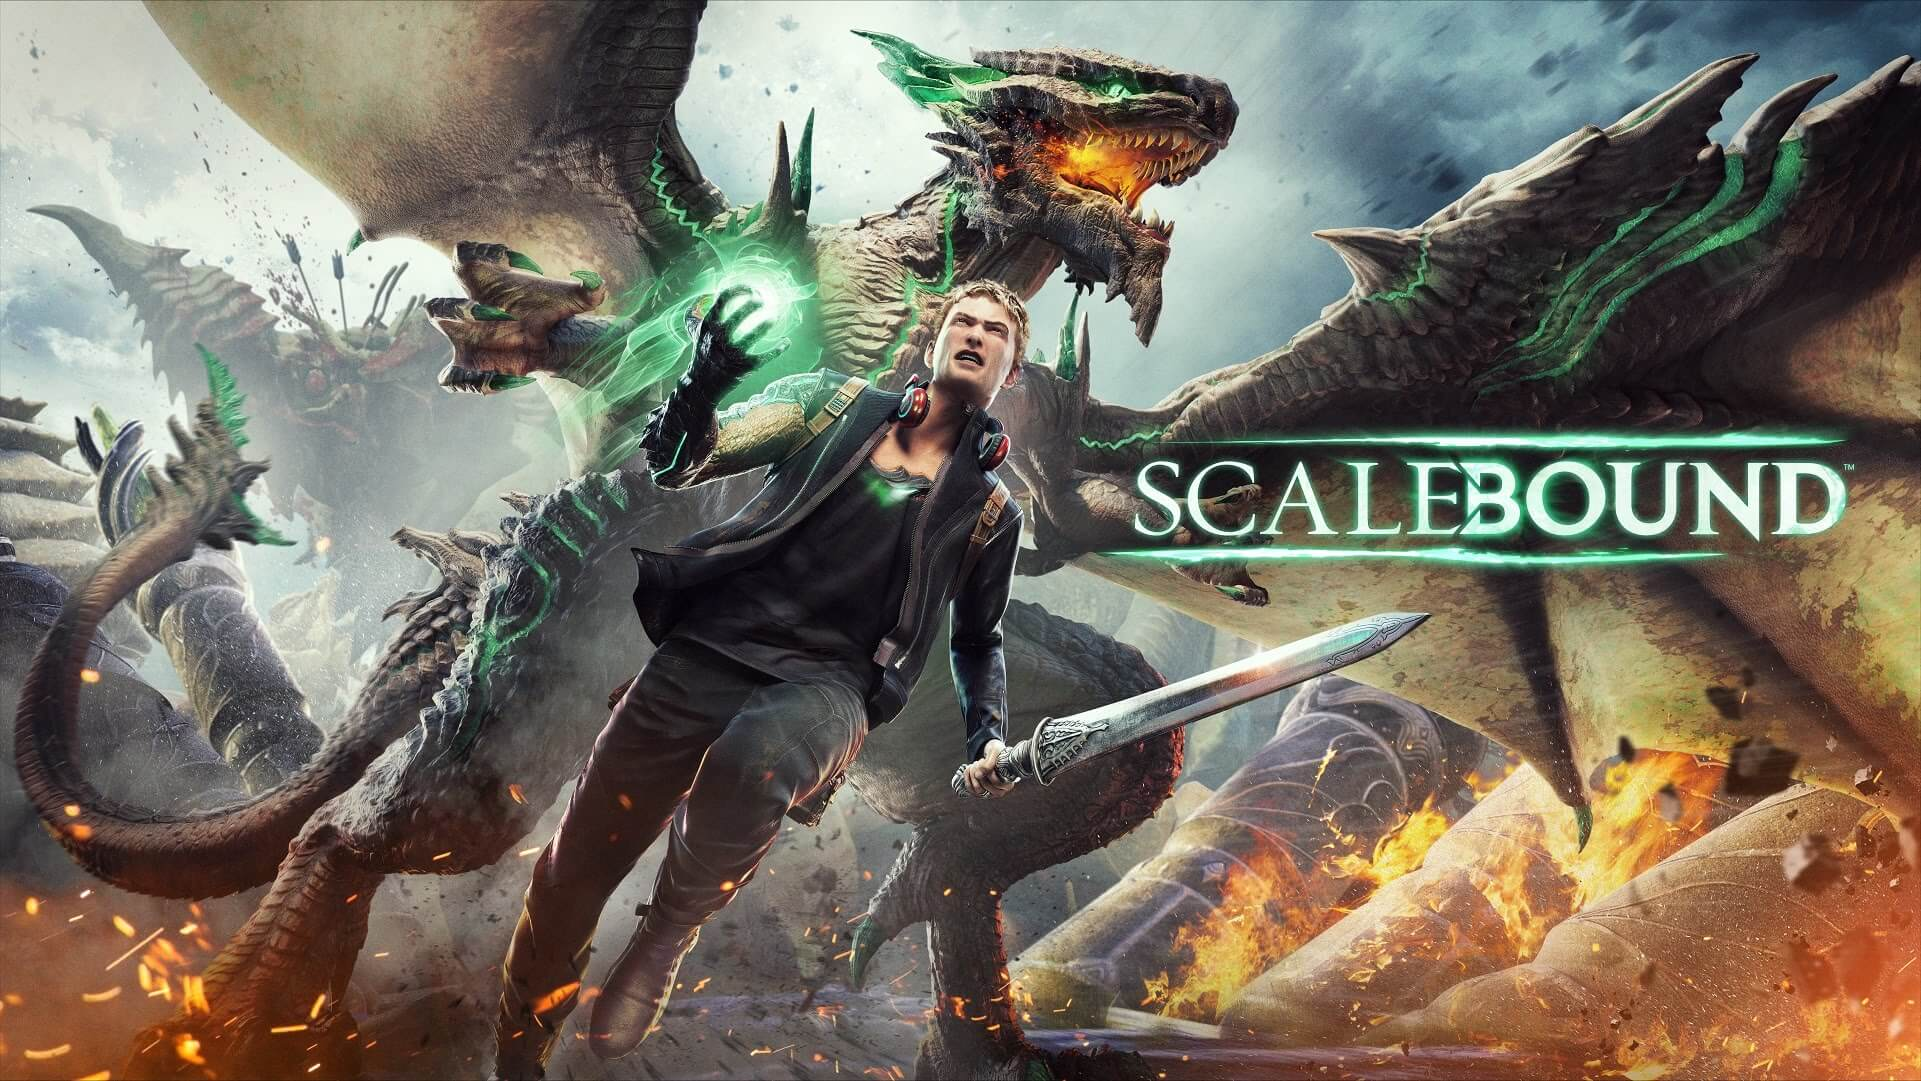 scalebouund canceled 1 - Microsoft Confirms that Scalebound Has Been Cancelled